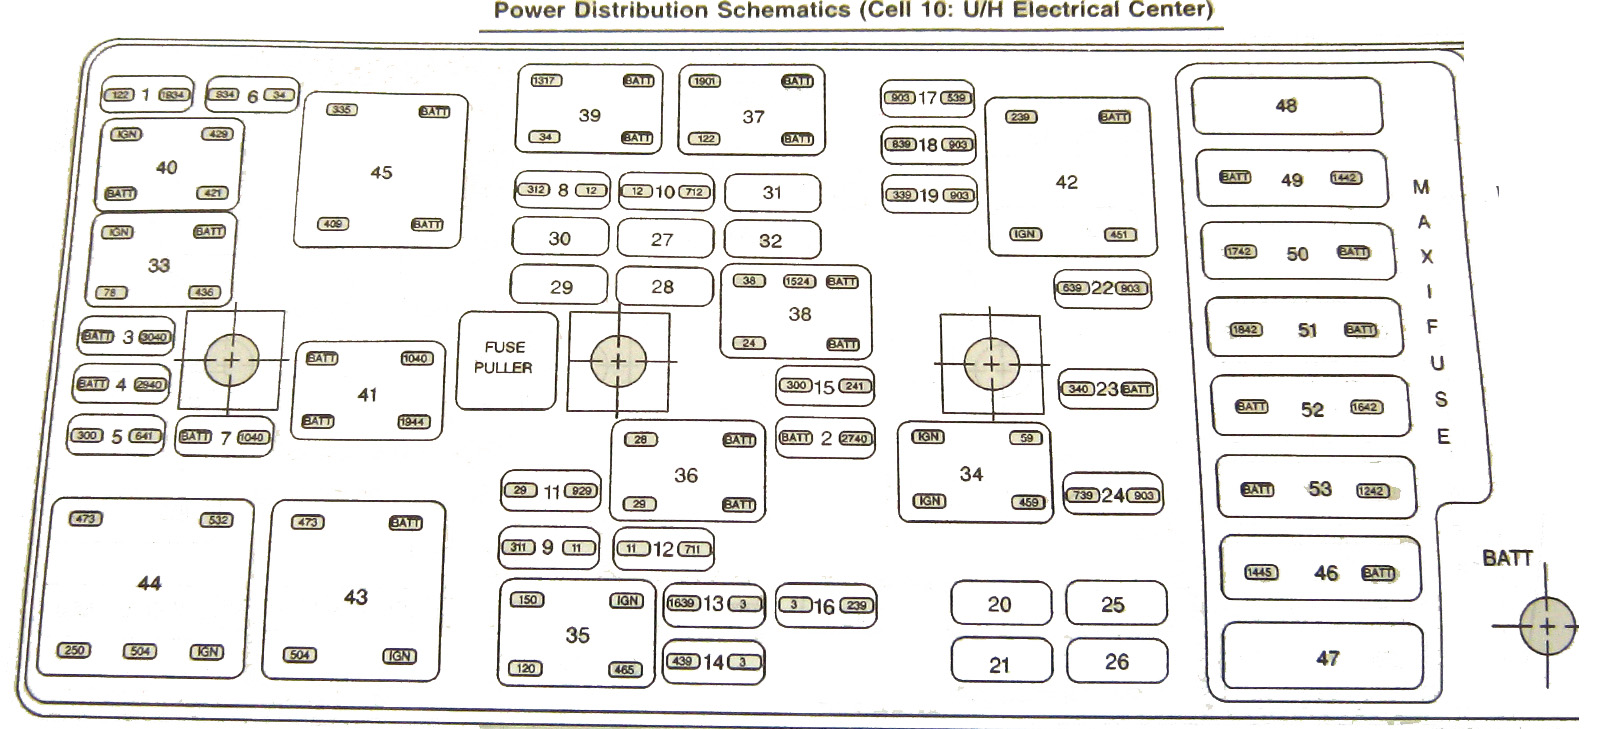 C5 Fuse Box - Wiring Diagram Server rent-collect -  rent-collect.ristoranteitredenari.it | Citroen C5 Fuse Box Diagram |  | Ristorante I Tre Denari Manerbio